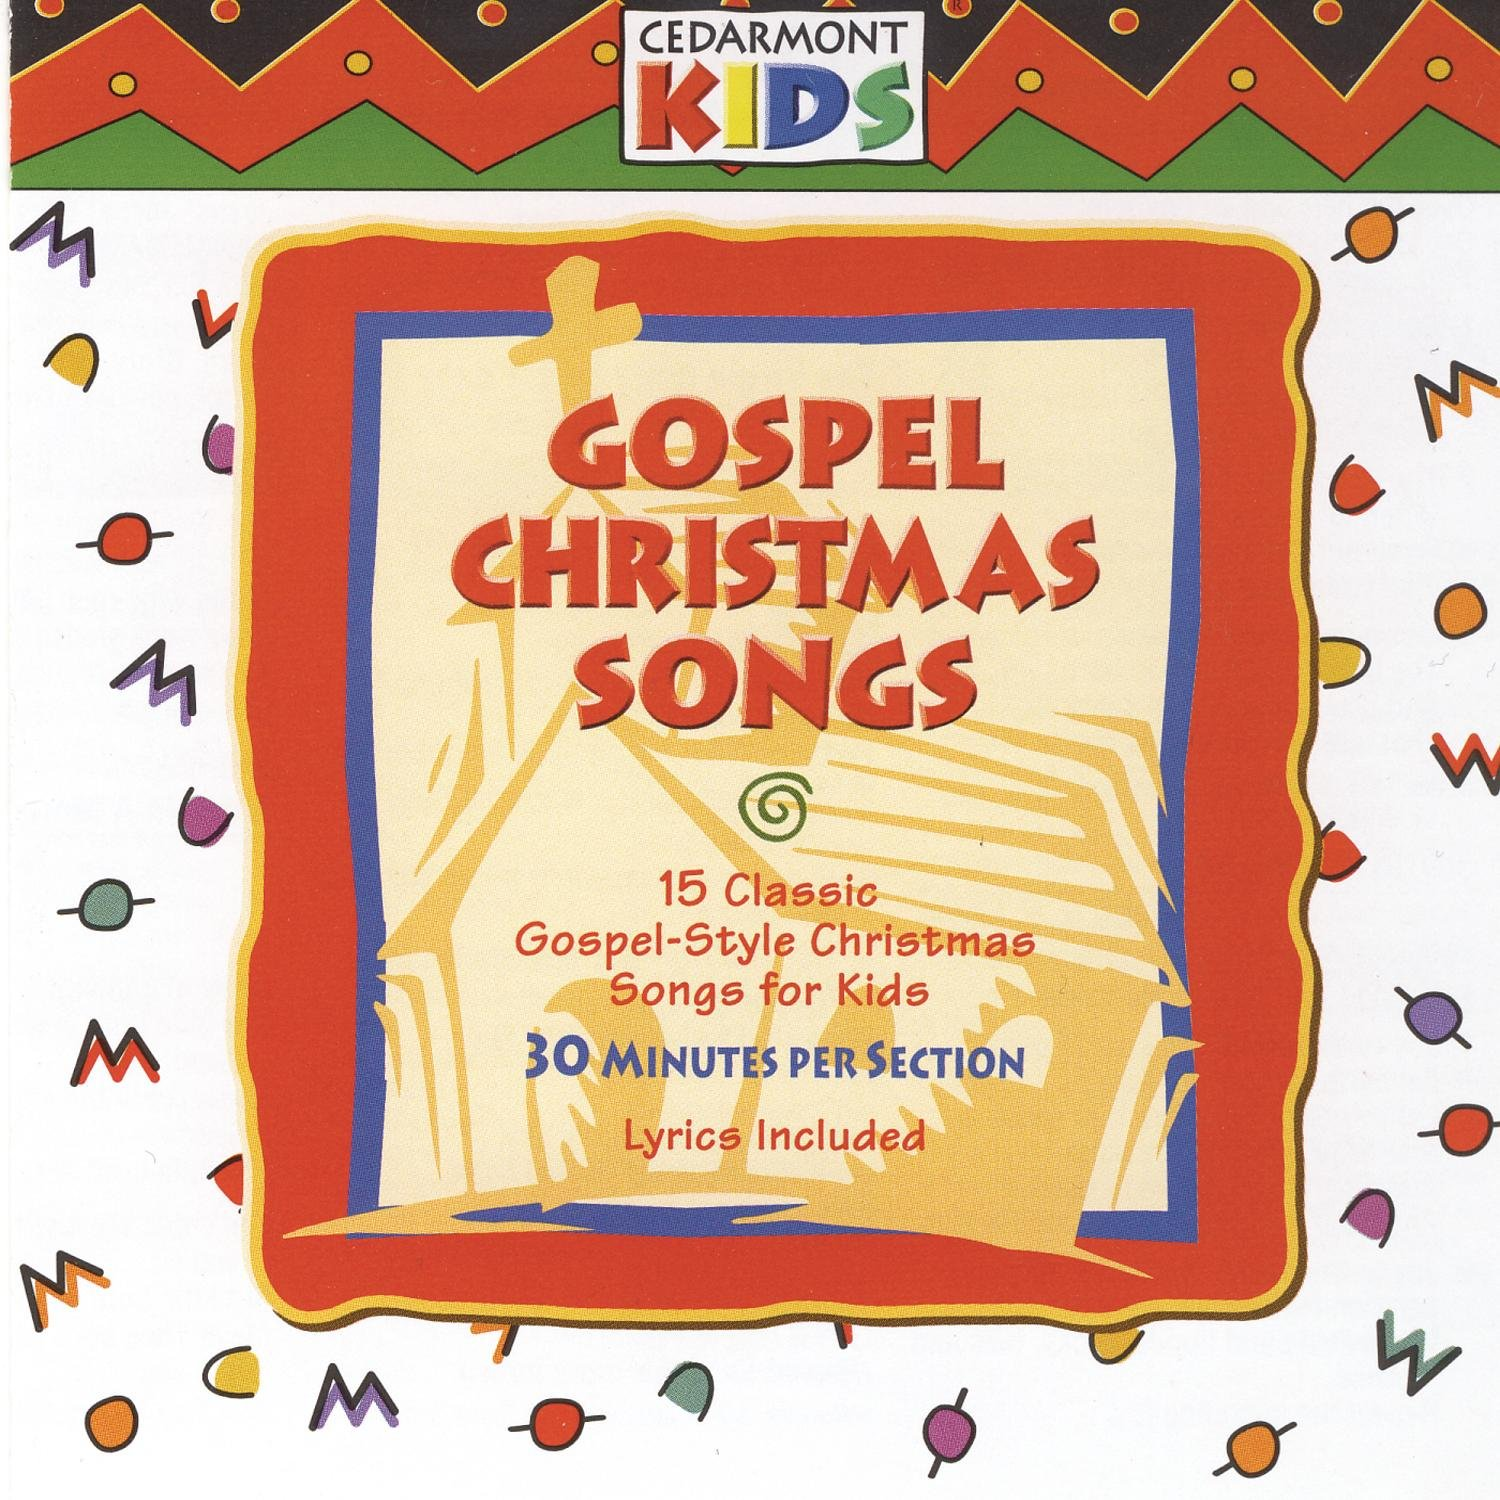 Cedarmont Kids - Gospel Christmas Songs - Amazon.com Music